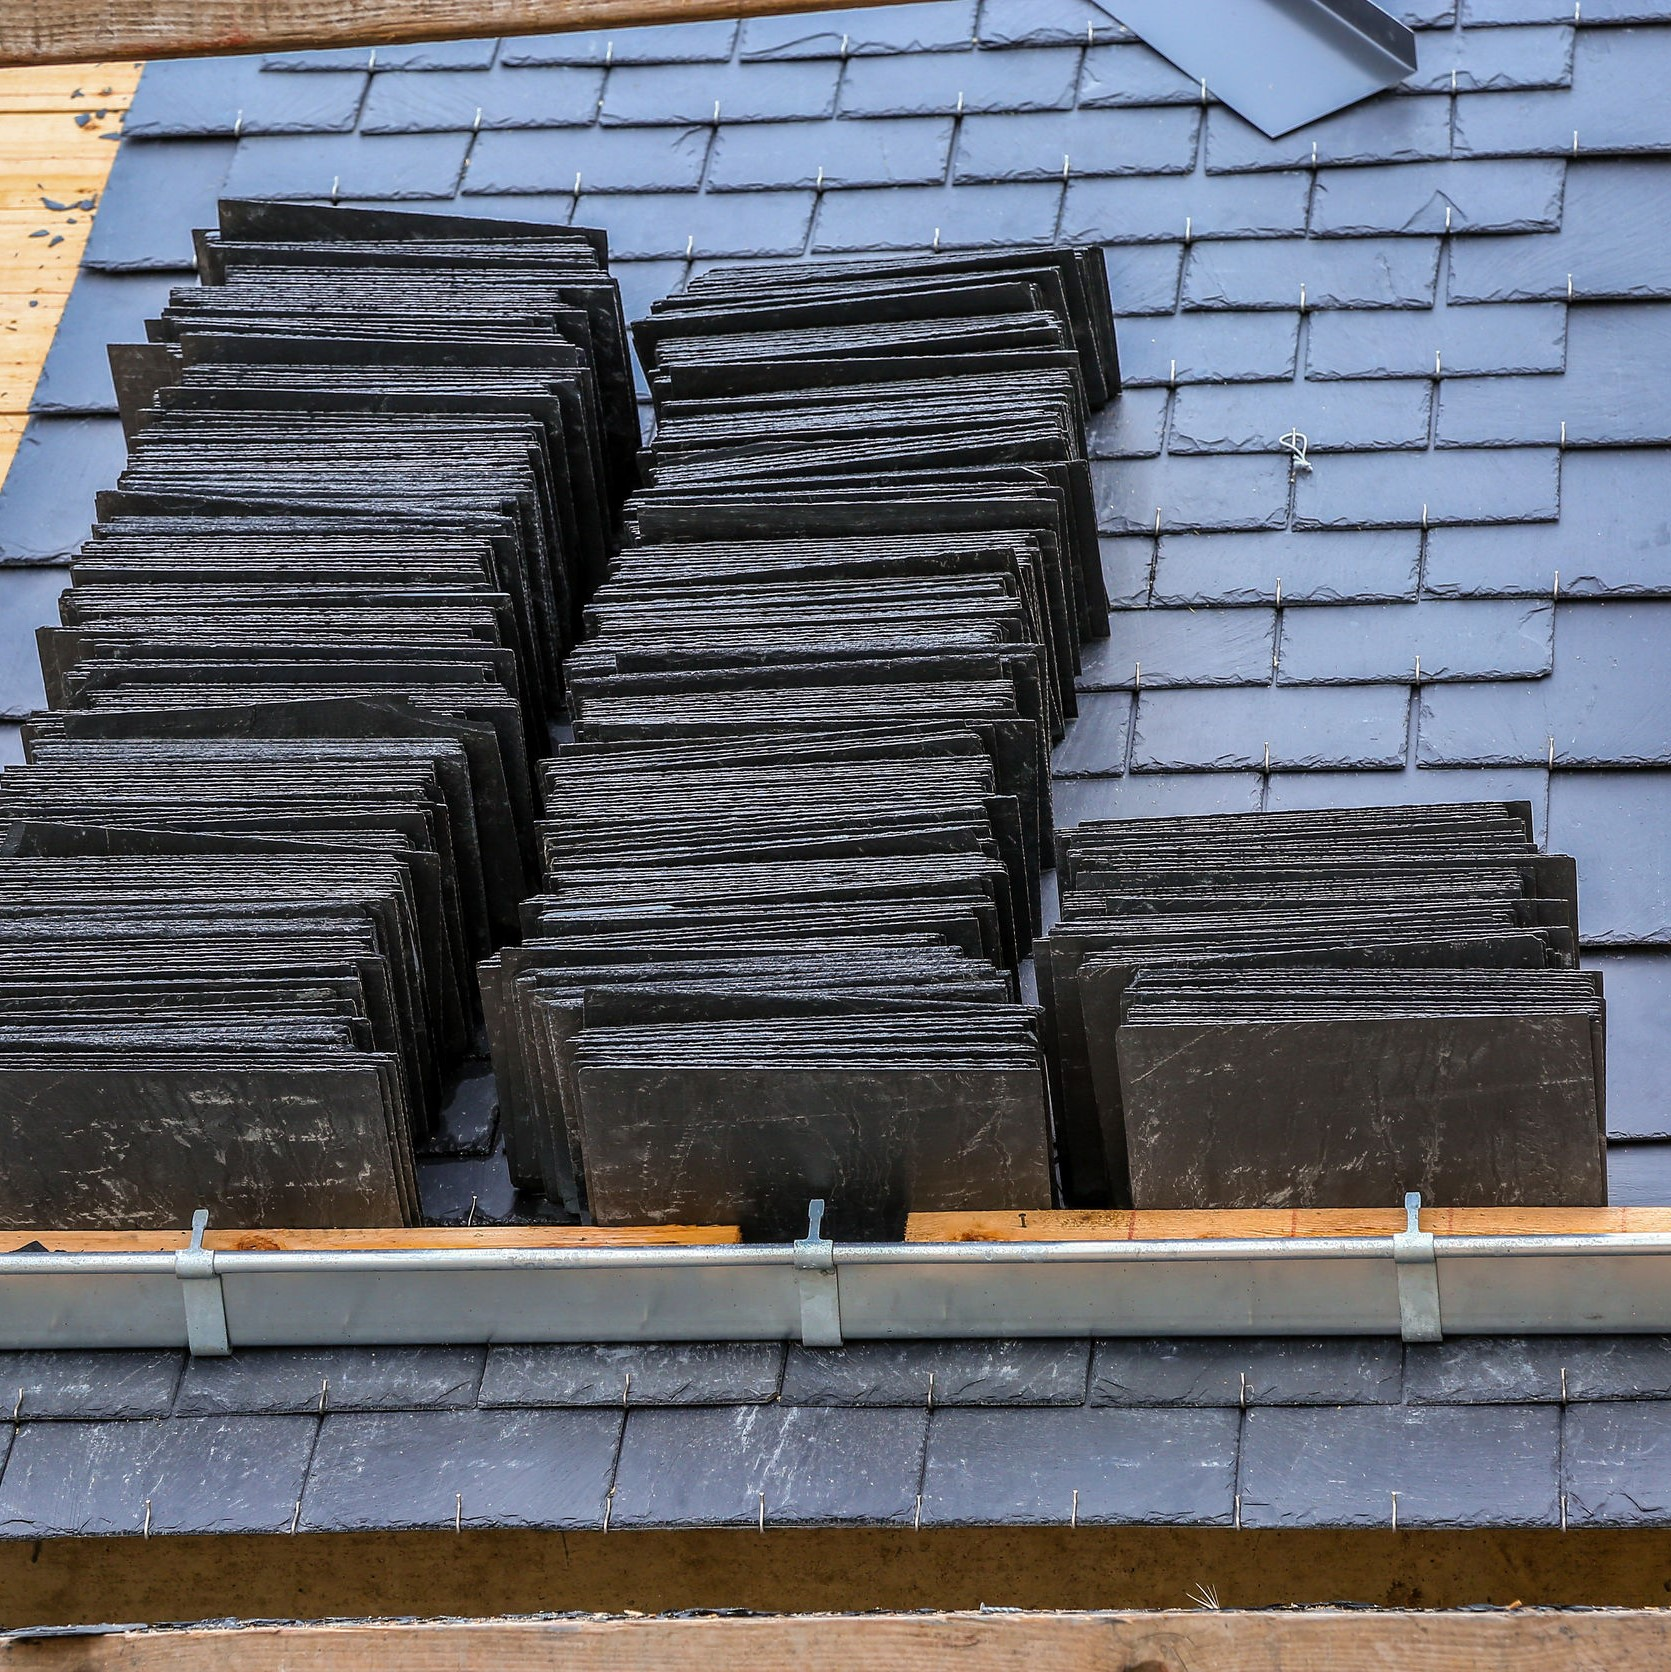 Eco Slate tiles being installed on a roof.